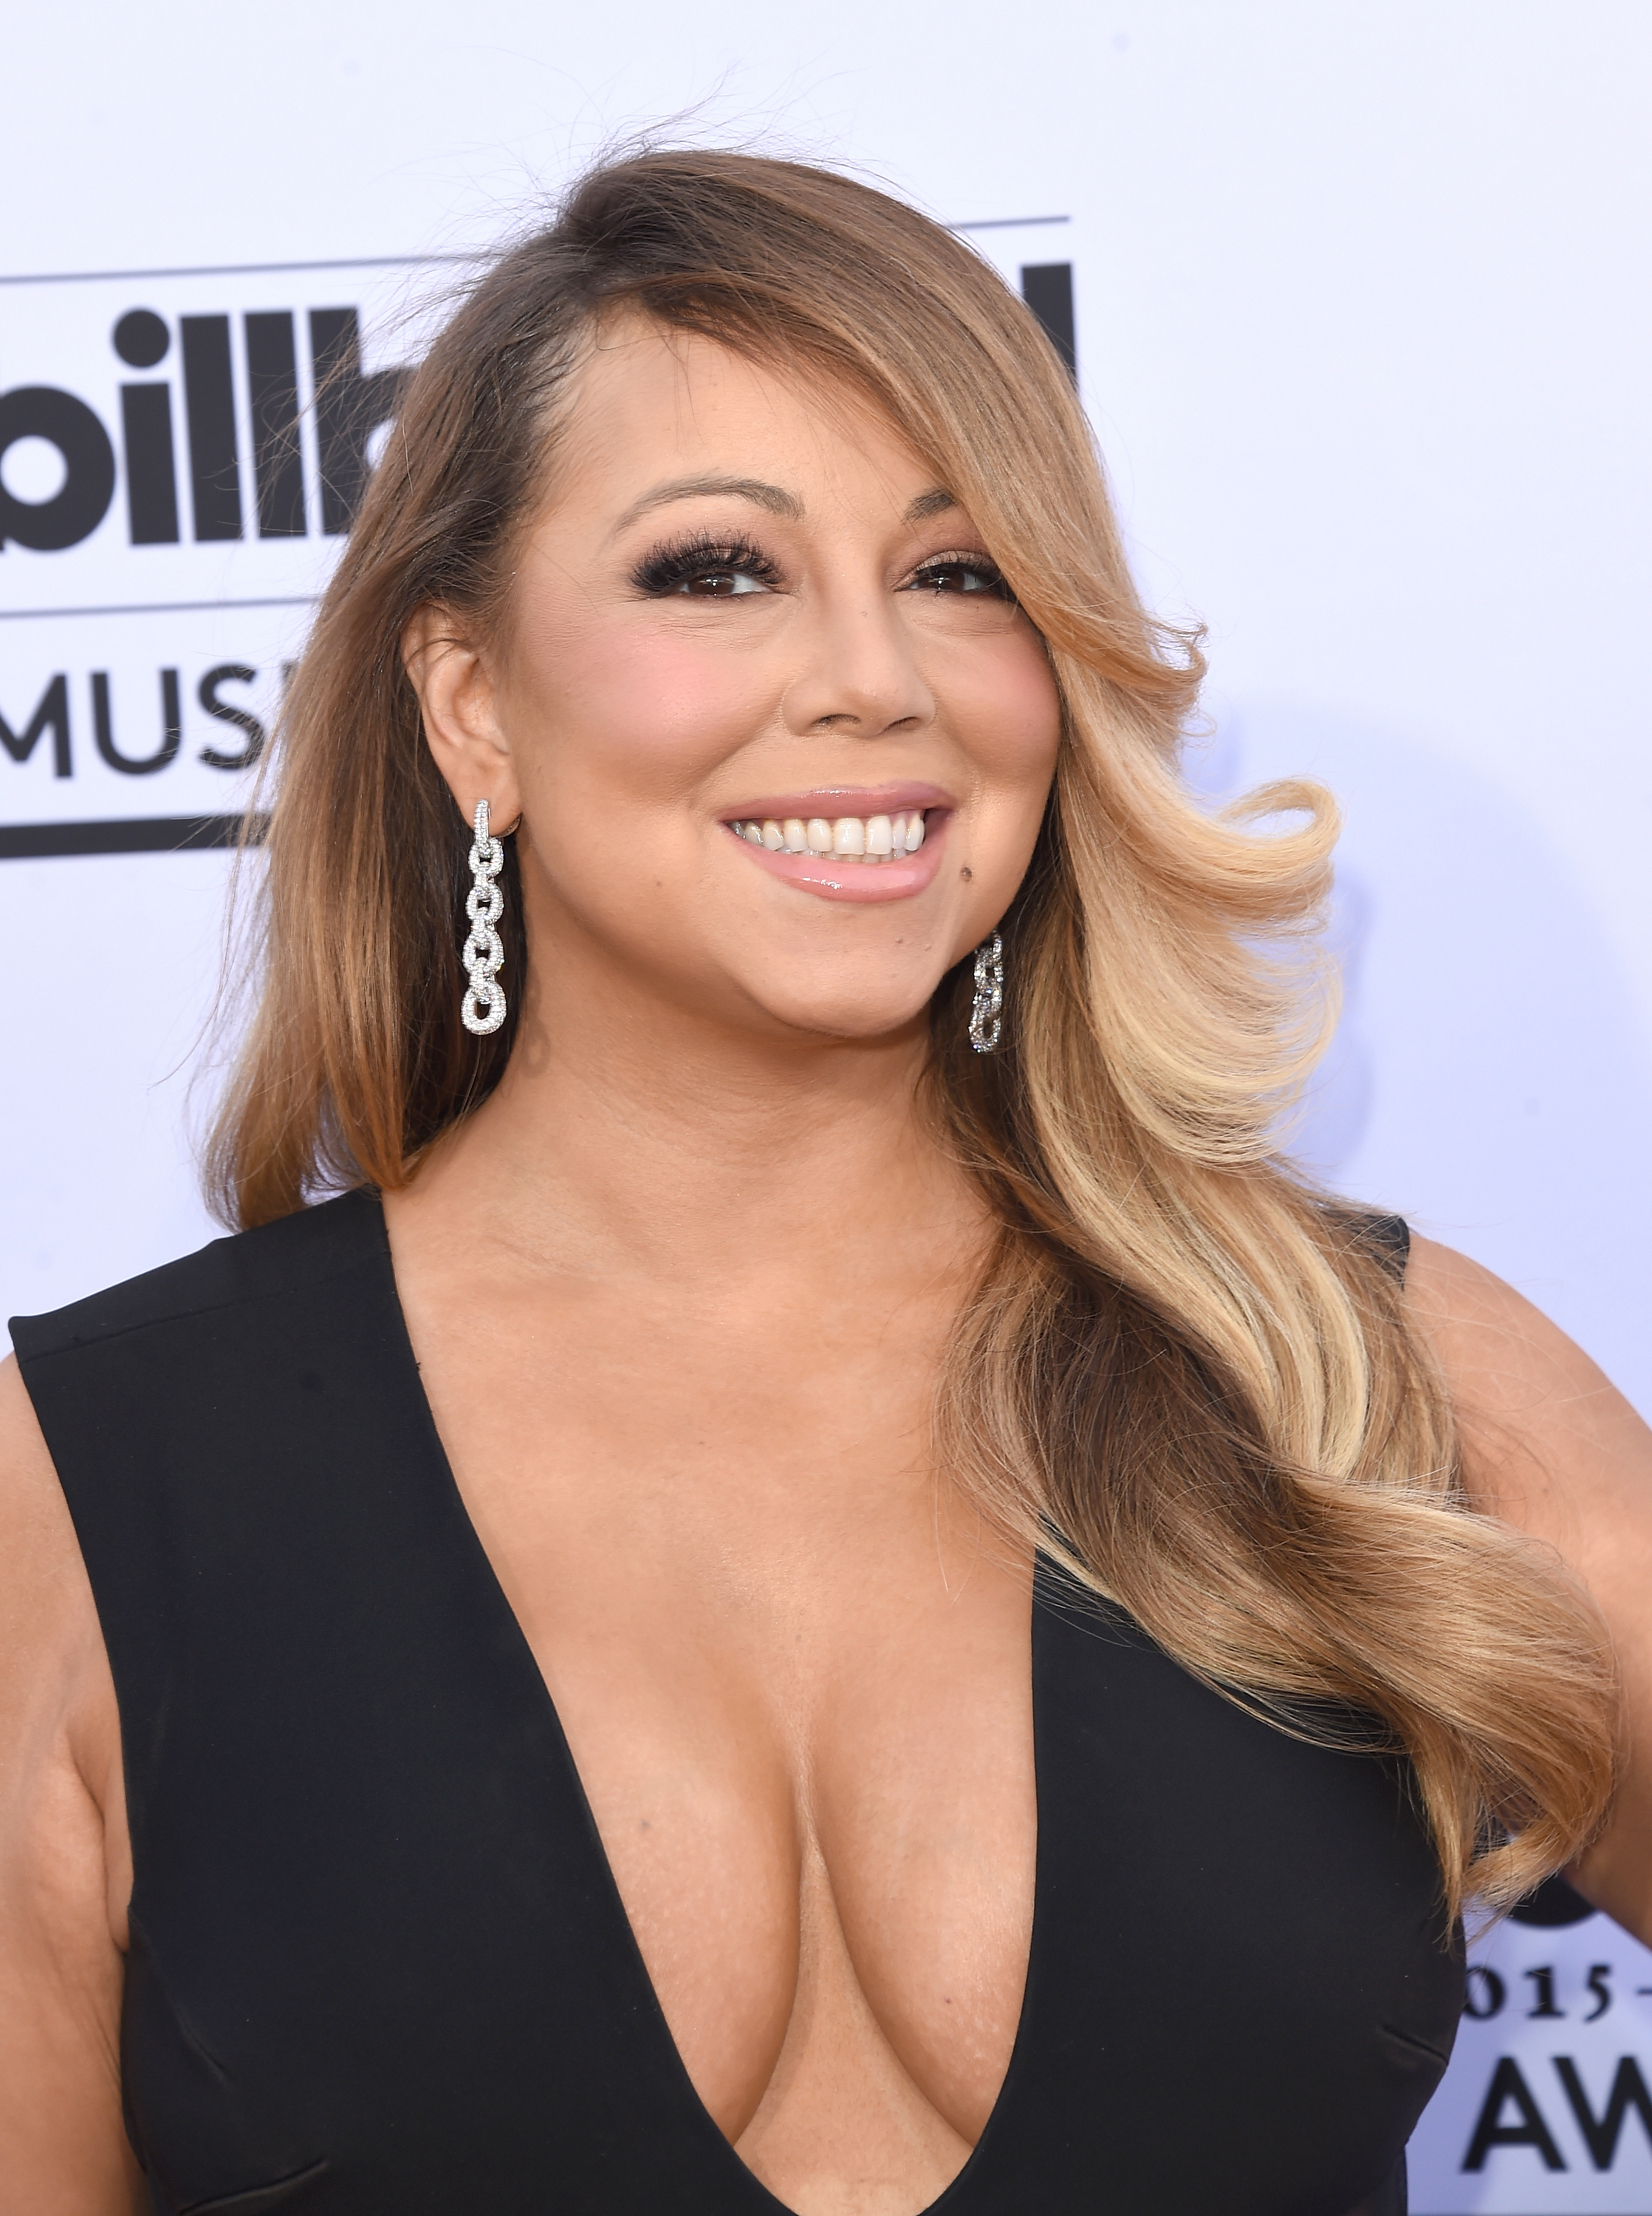 Mariah Carey arrives at the 2015 Billboard Music Awards at MGM Garden Arena on May 17, 2015 in Las Vegas.